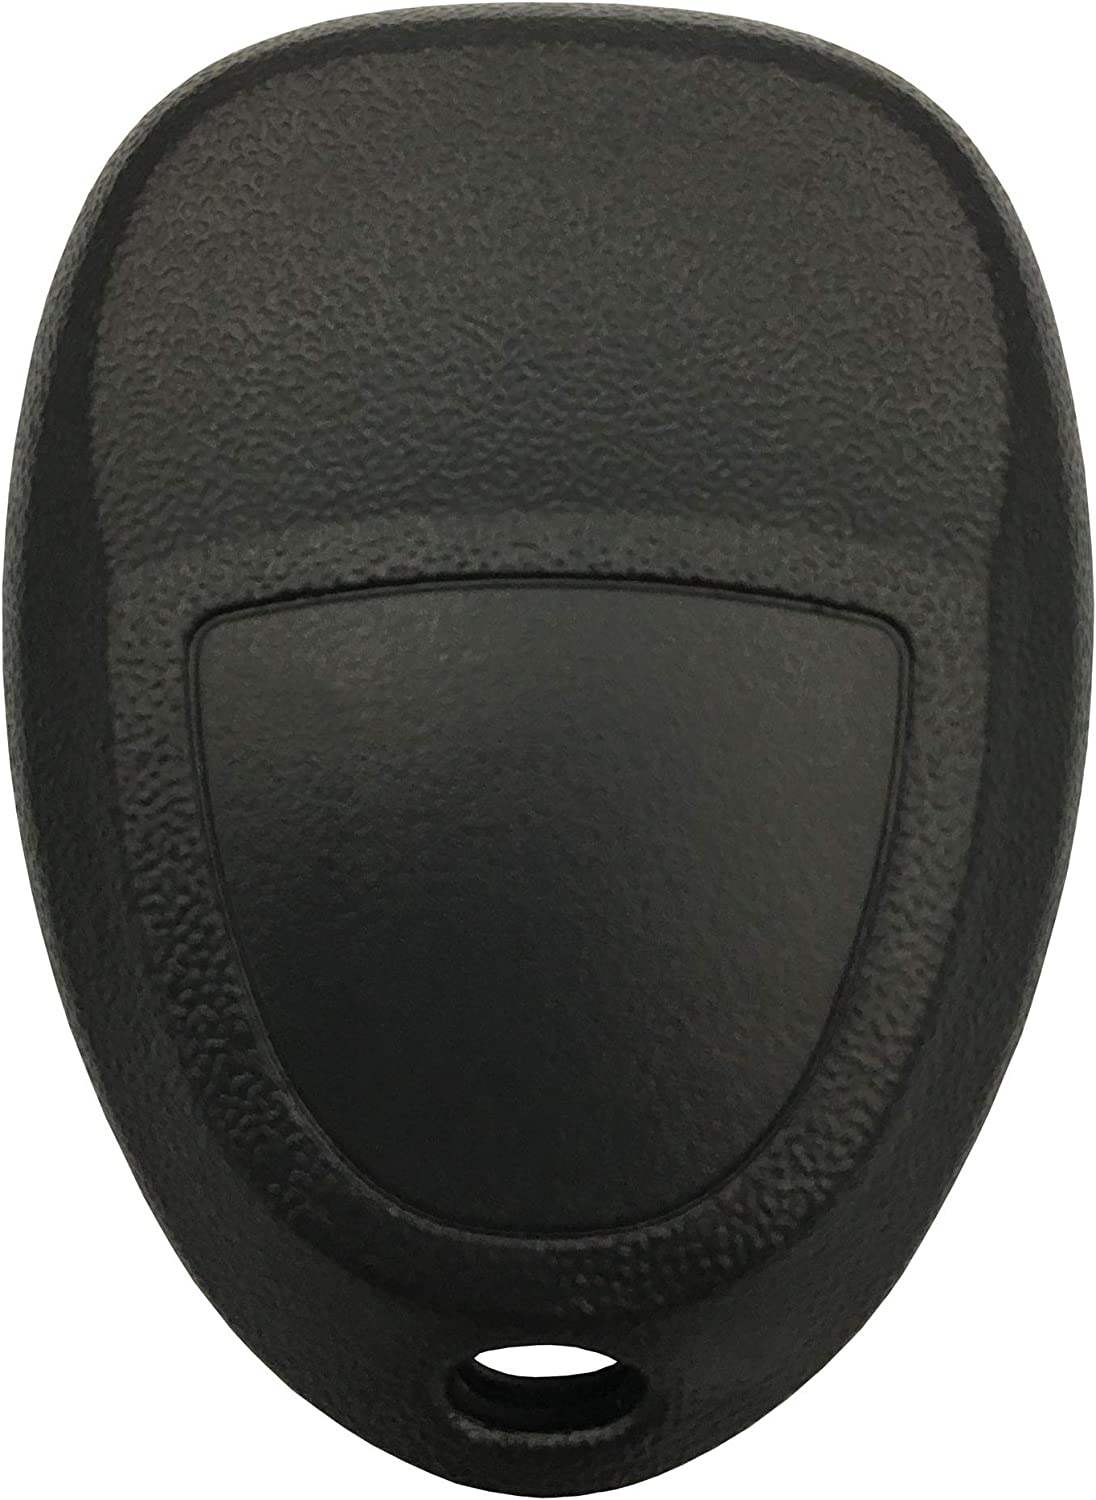 The Best Replacement for New Keyless Entry Remote Car Key Fob Shell Case Fit for Buick Cadillac Chevy GMC Pontiac Saturn 2Packs